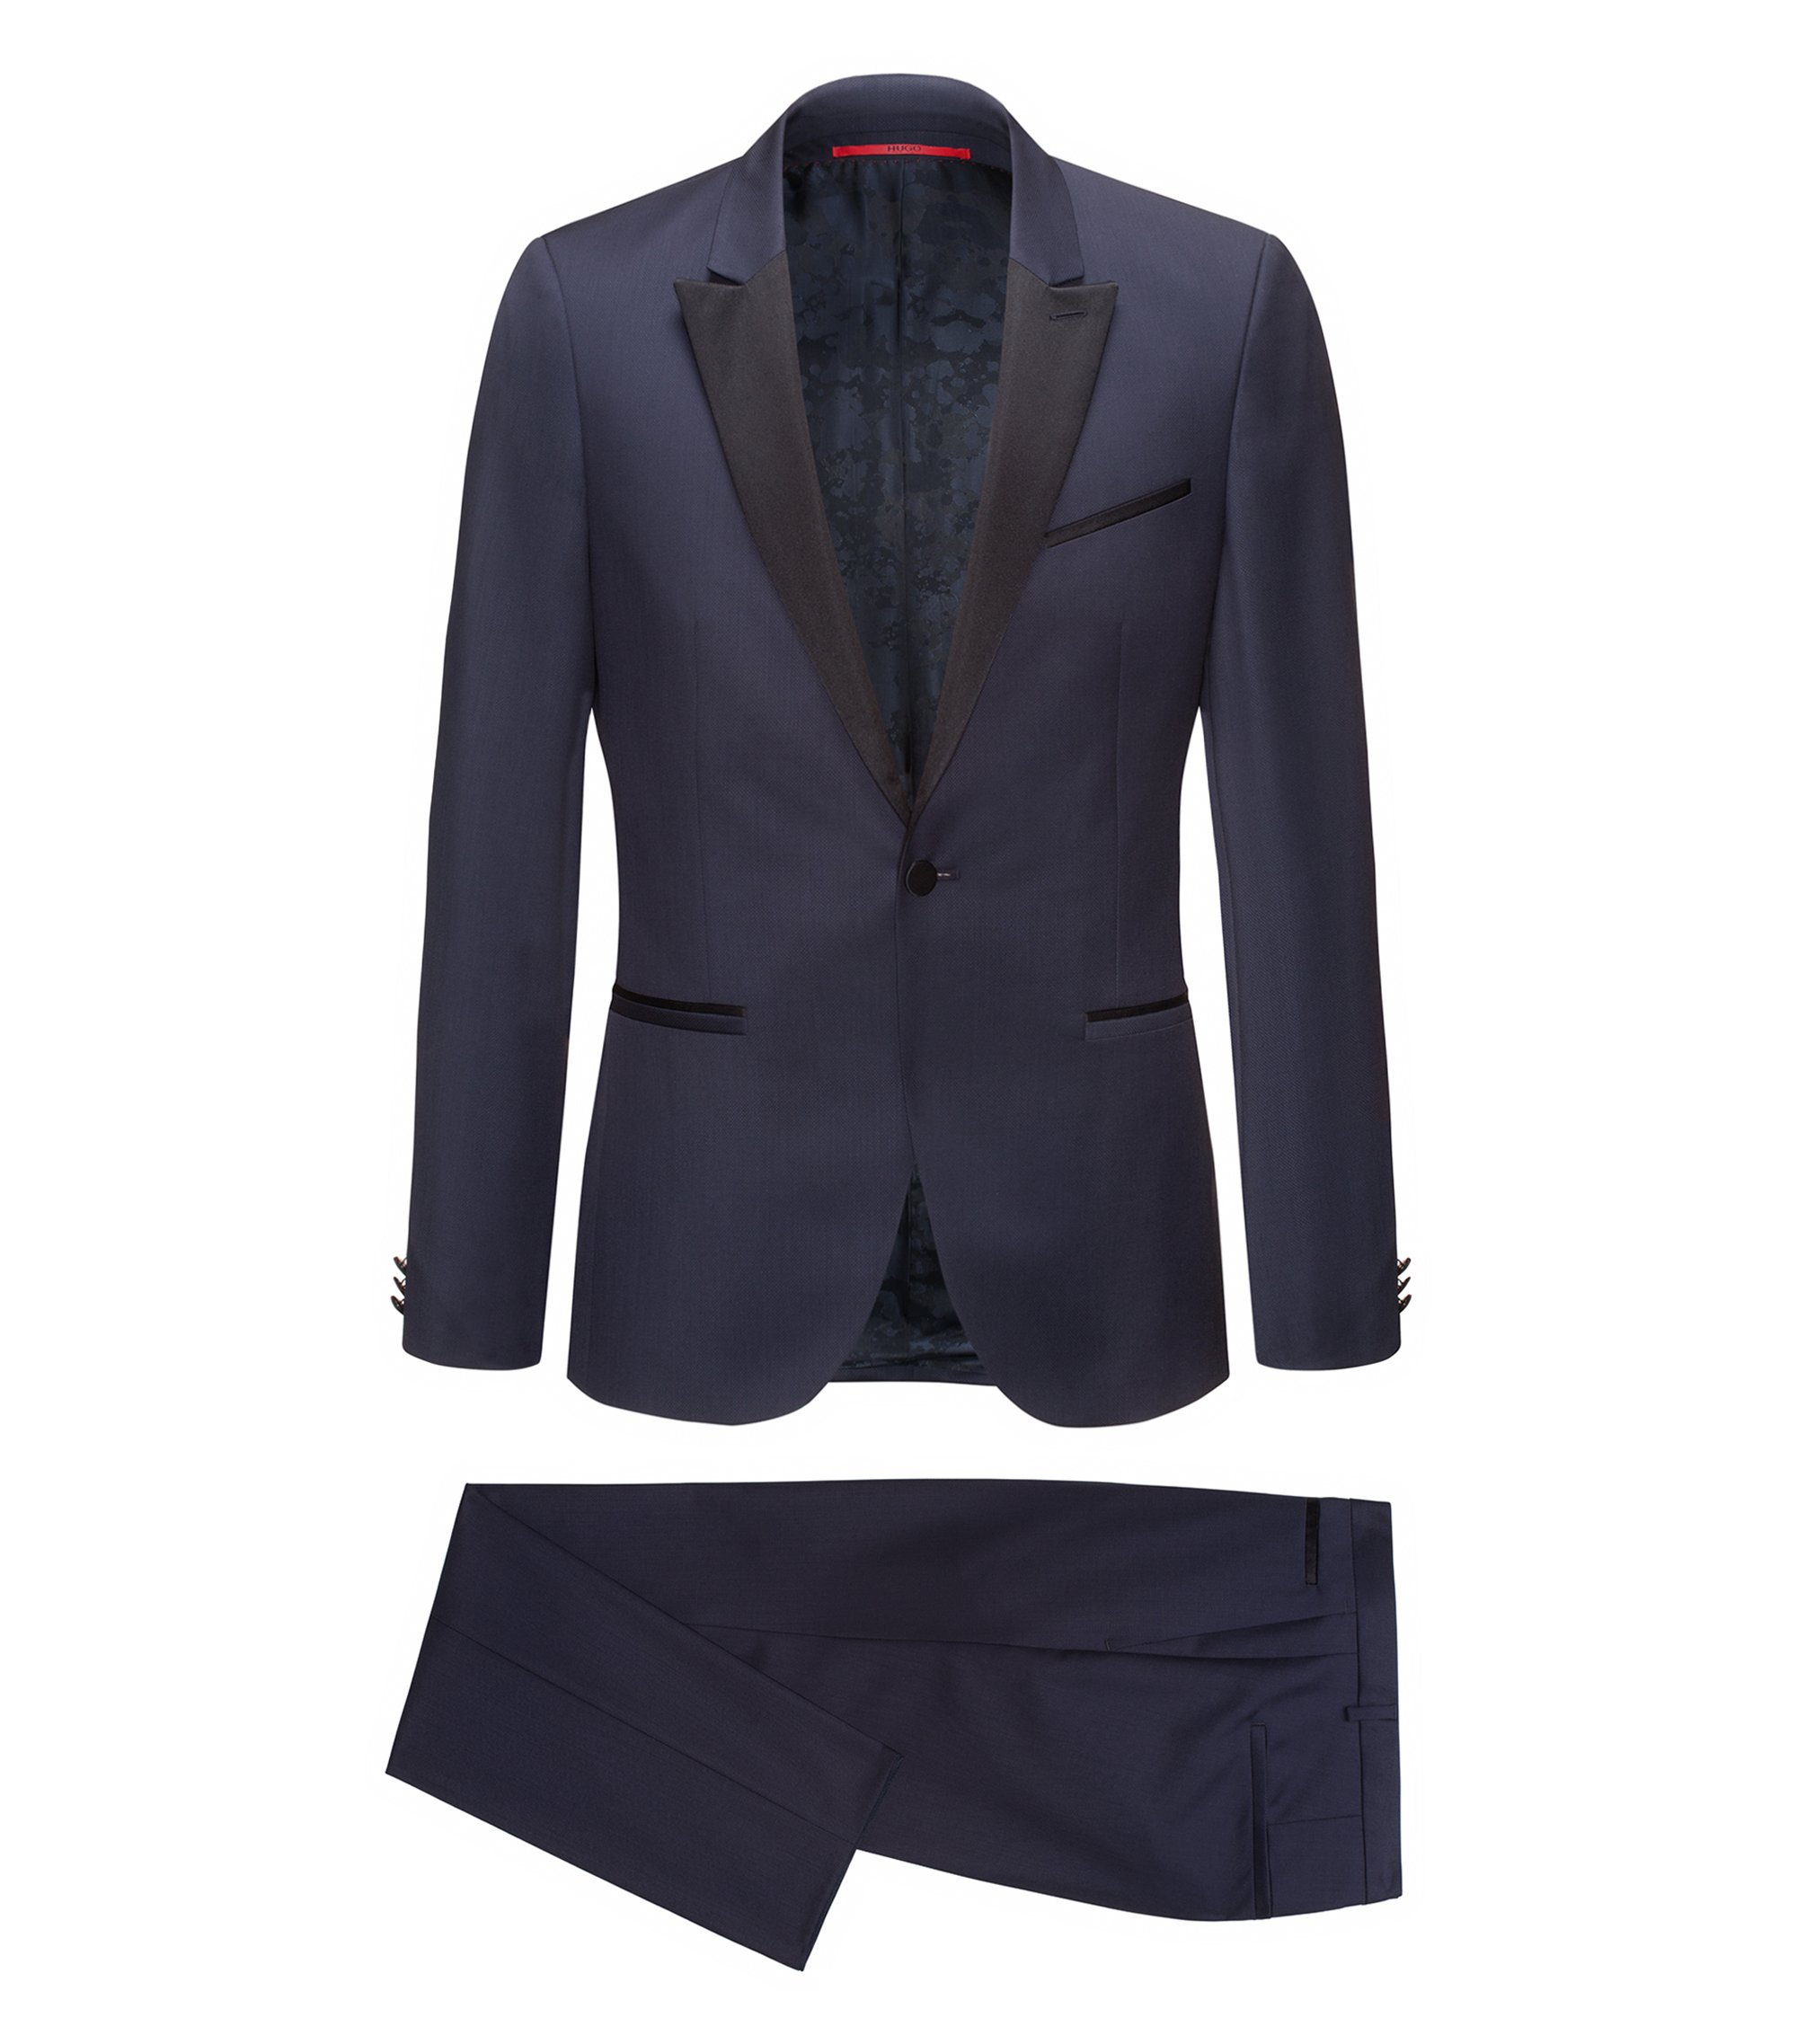 Wool Blend Tuxedo, Extra Slim Fit | Auerd/Himins, Dark Blue